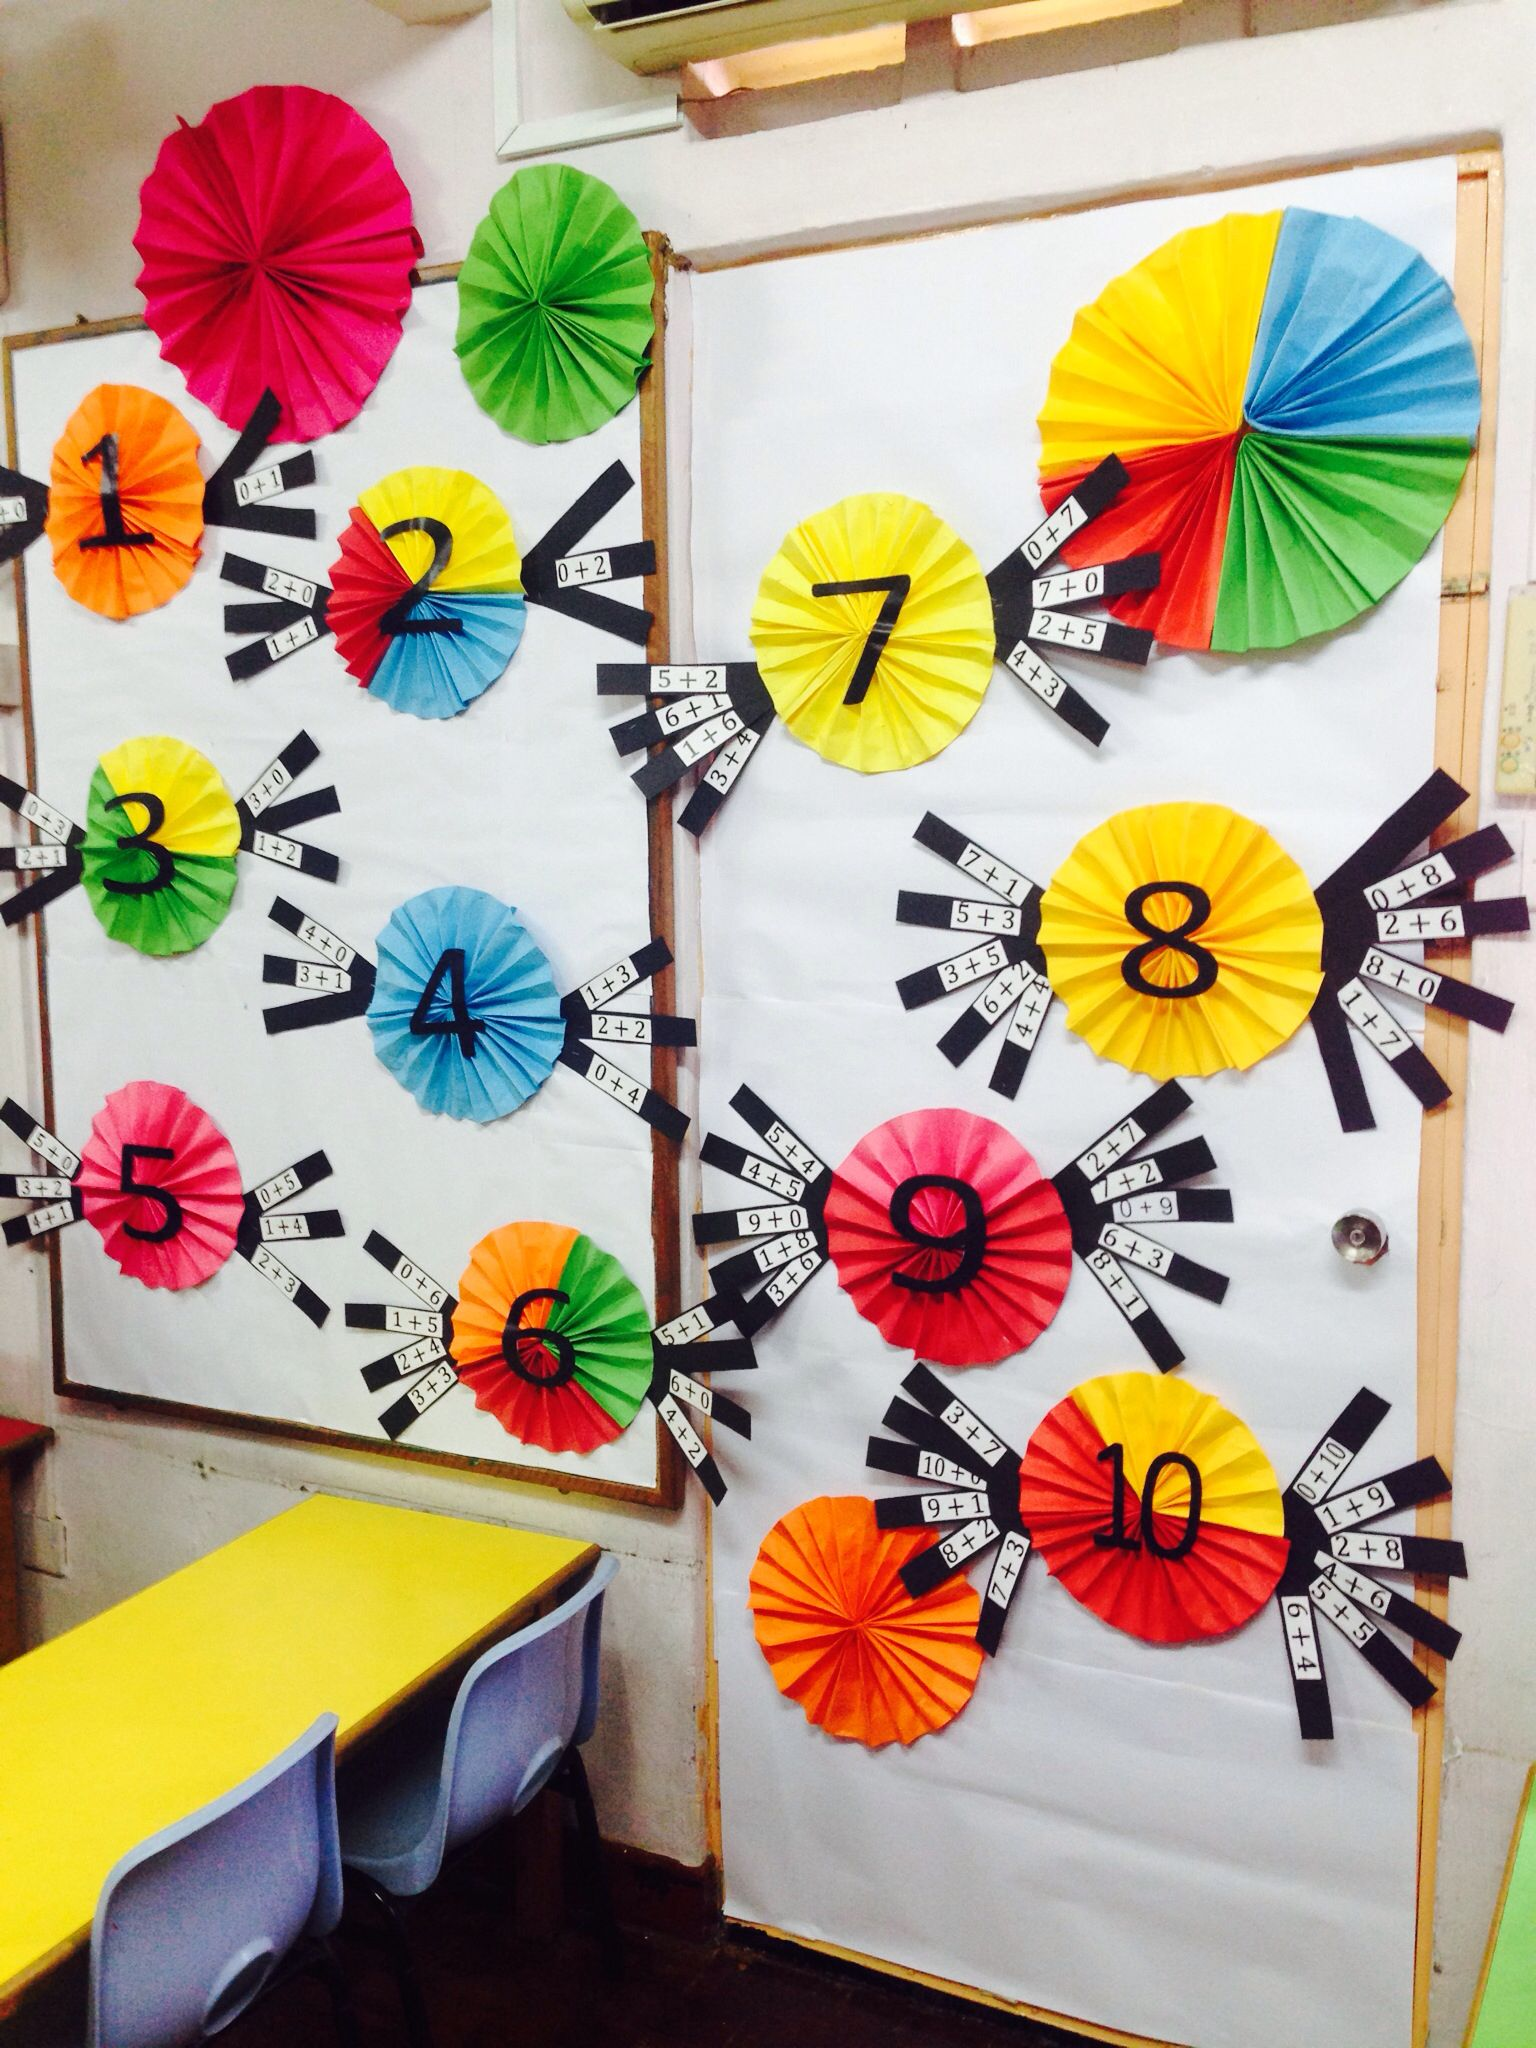 Number Bonds A Sweet Treat Our Classroom Display